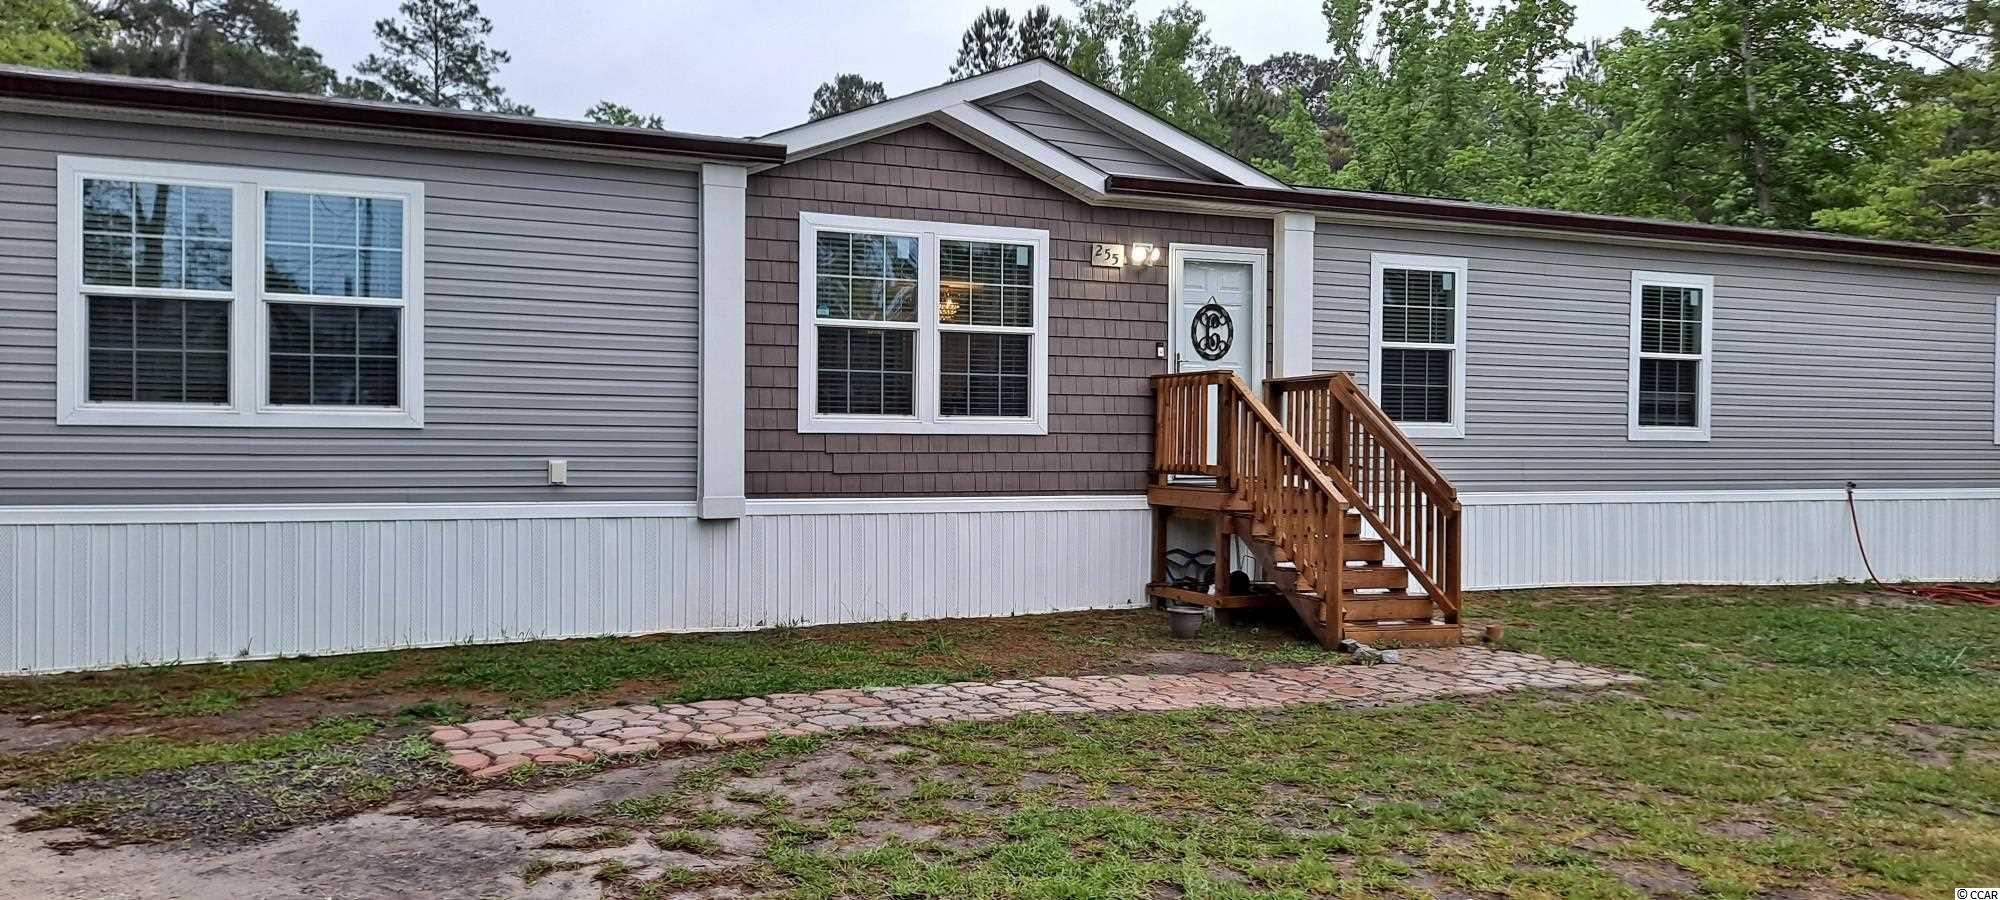 Lovely and spacious four-bedroom two bath home with a living room area, a den area, and a very spacious laundry room that includes a utility sink. There is also a nice deck and large backyard on approximately an acre of land. Within approximately two miles to Harris Landing boat ramp. This property has been de-titled and is also connected to county water and sewer. Square footage is approximate and not guaranteed. Buyer is responsible for verification.